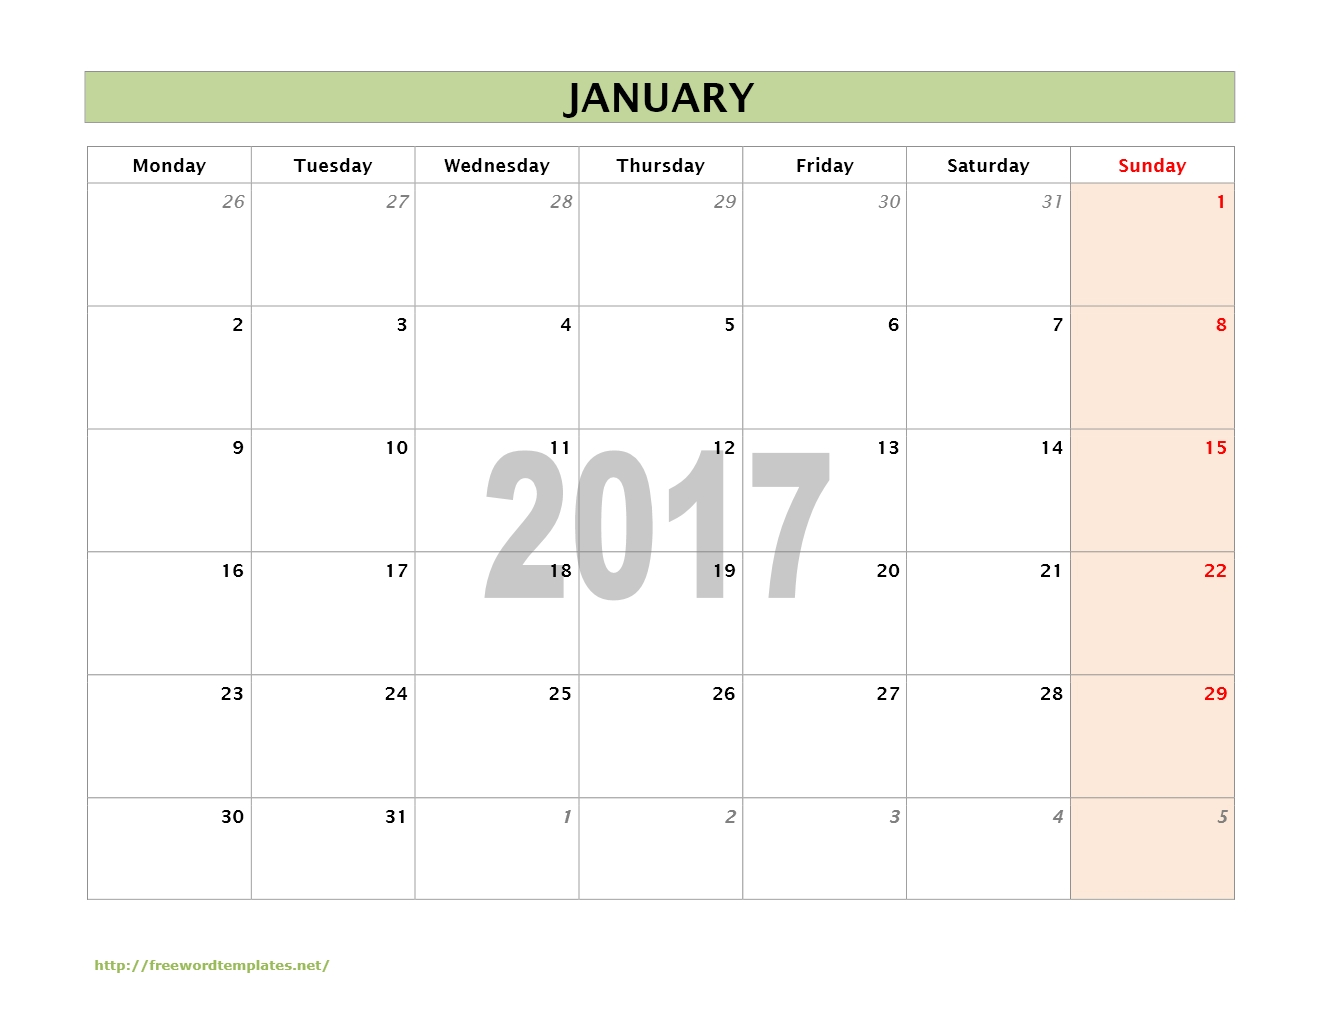 2017 Calendar Templates | Freewordtemplates.net